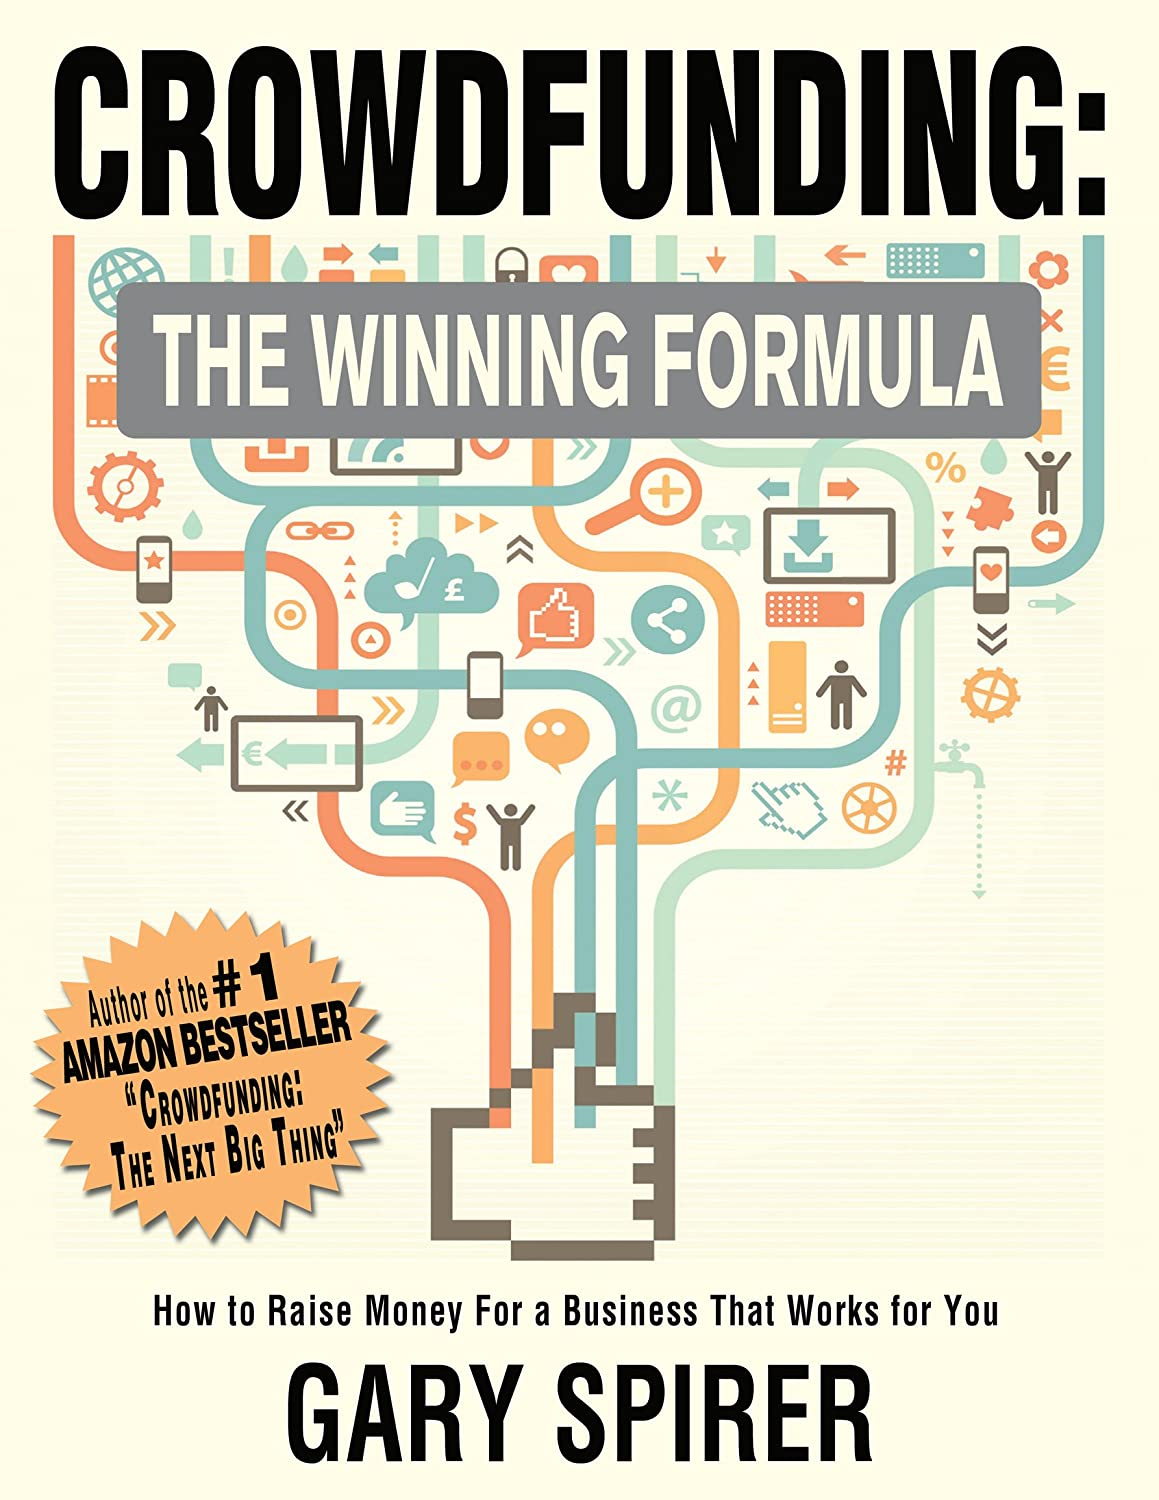 Crowdfunding: The Winning Formula by Gary Spirer